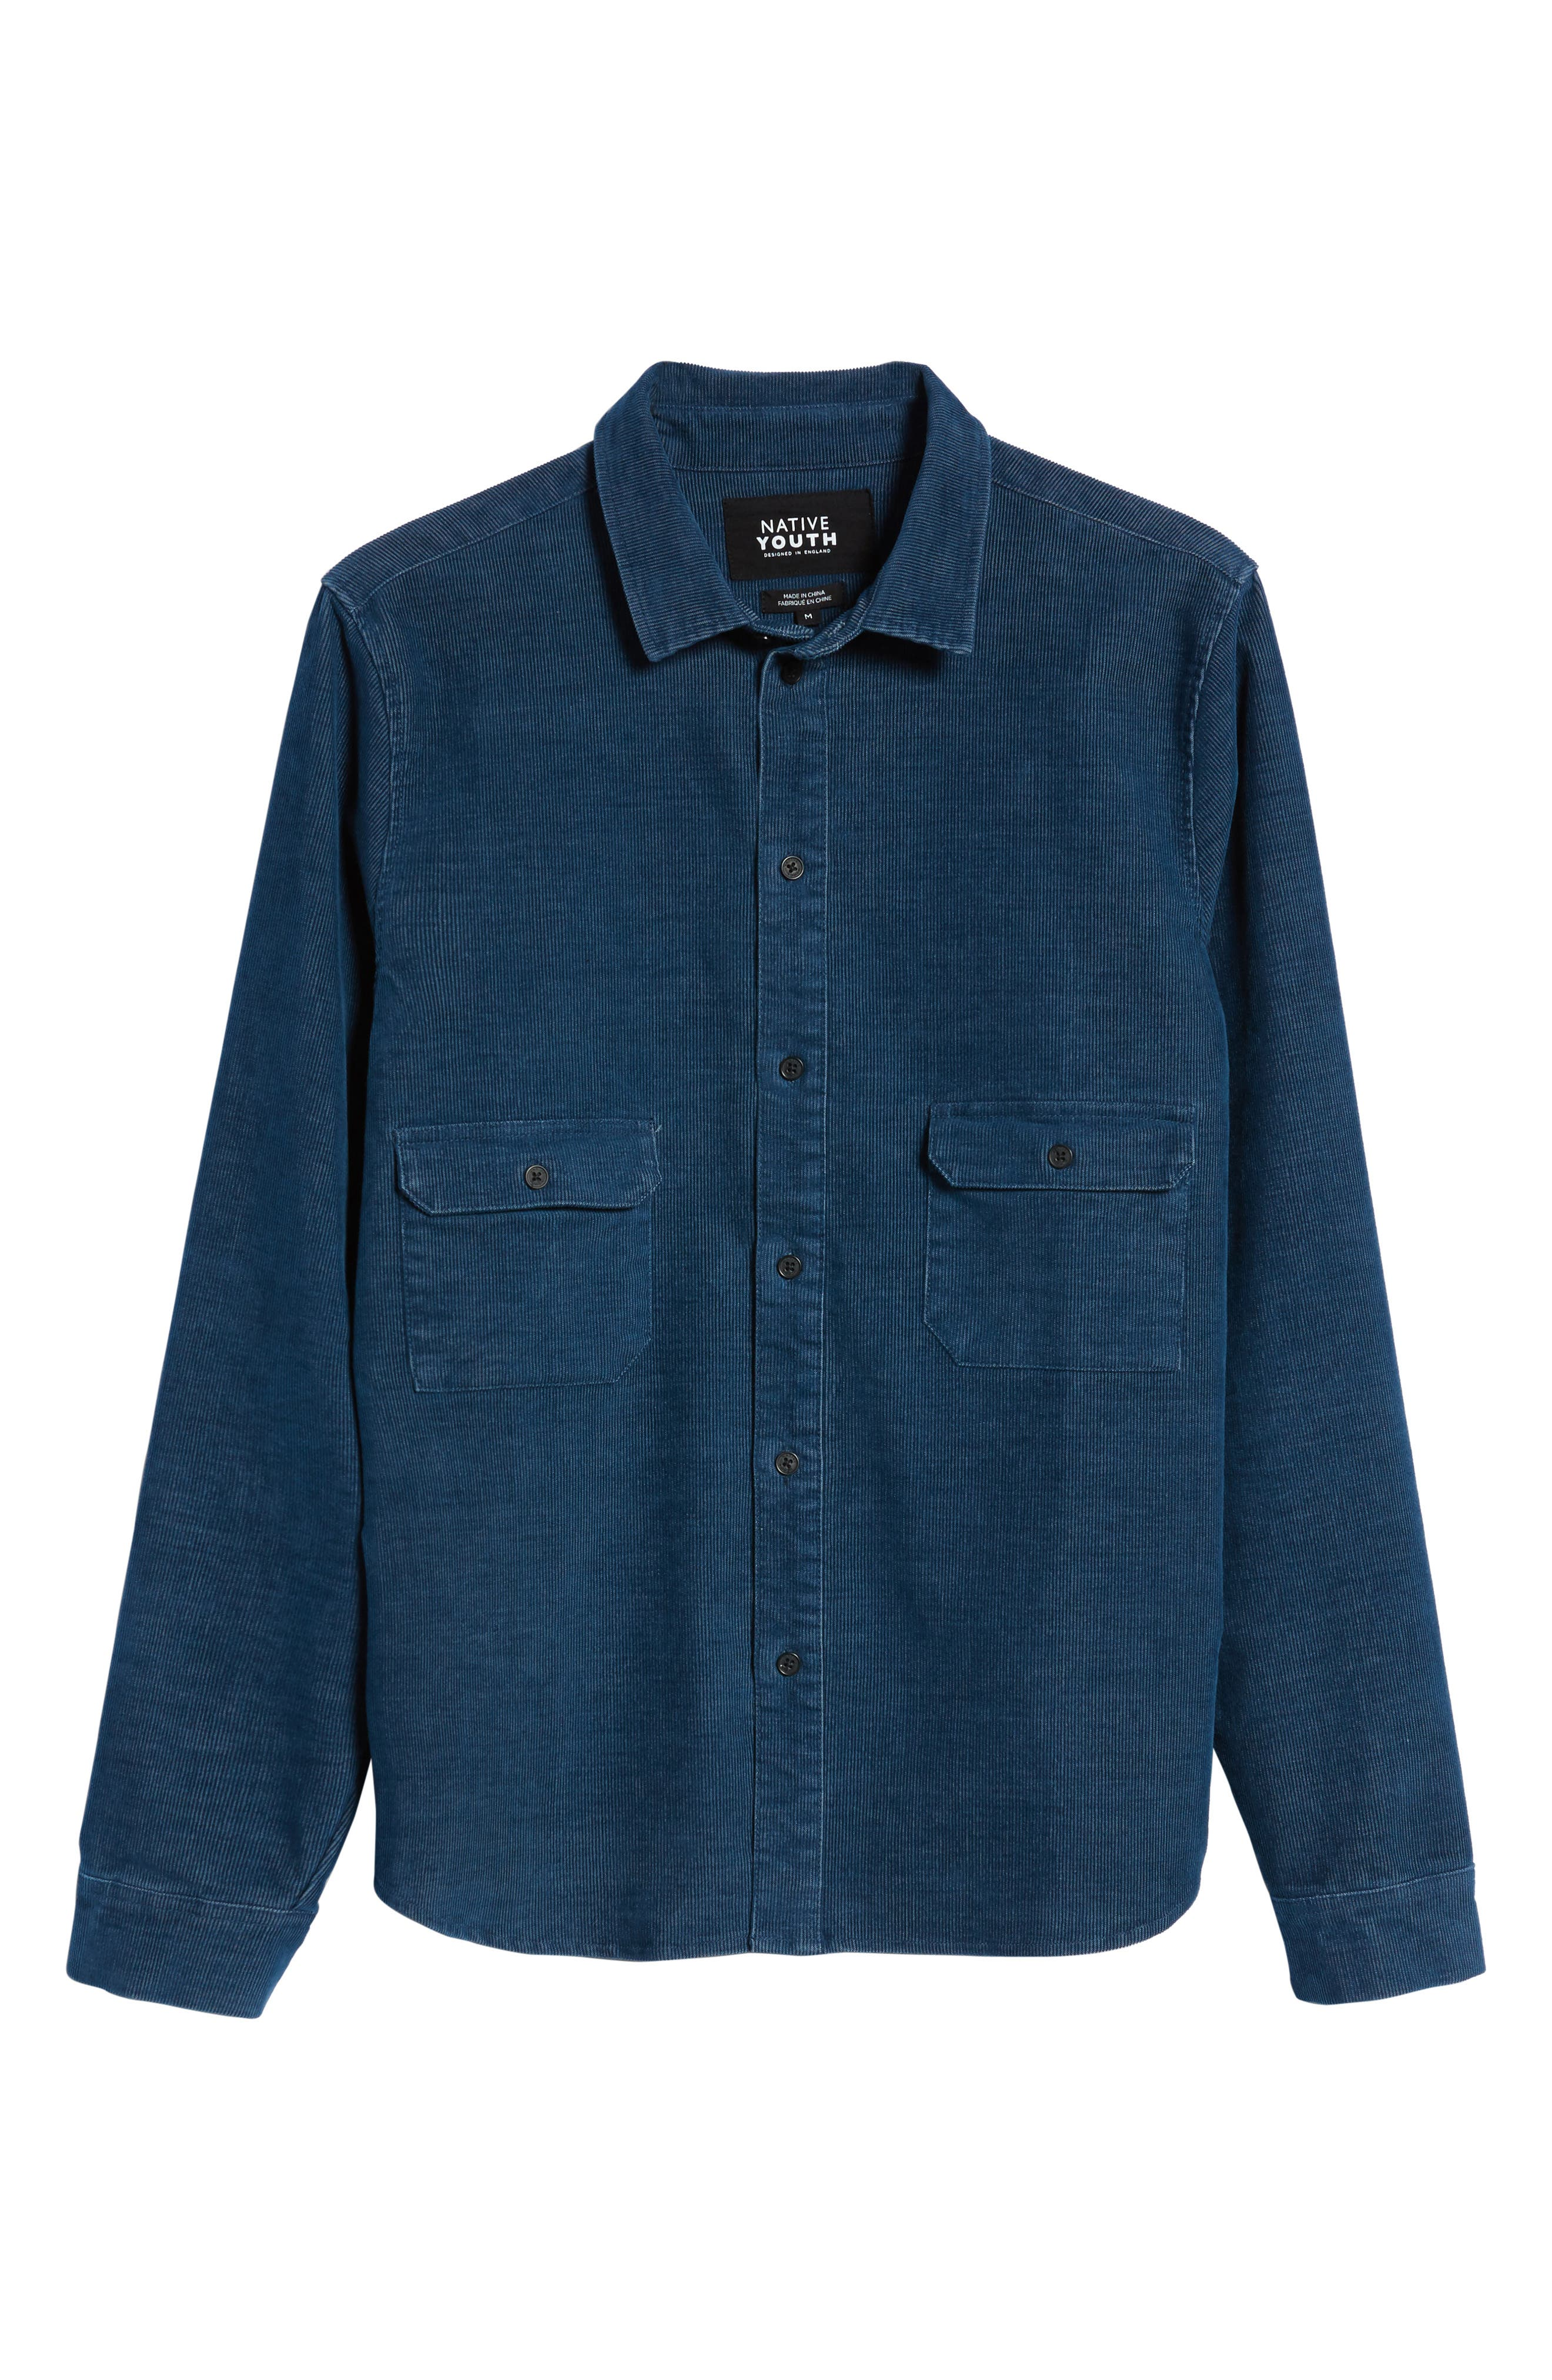 Cheriton Corduroy Shirt,                             Alternate thumbnail 6, color,                             400